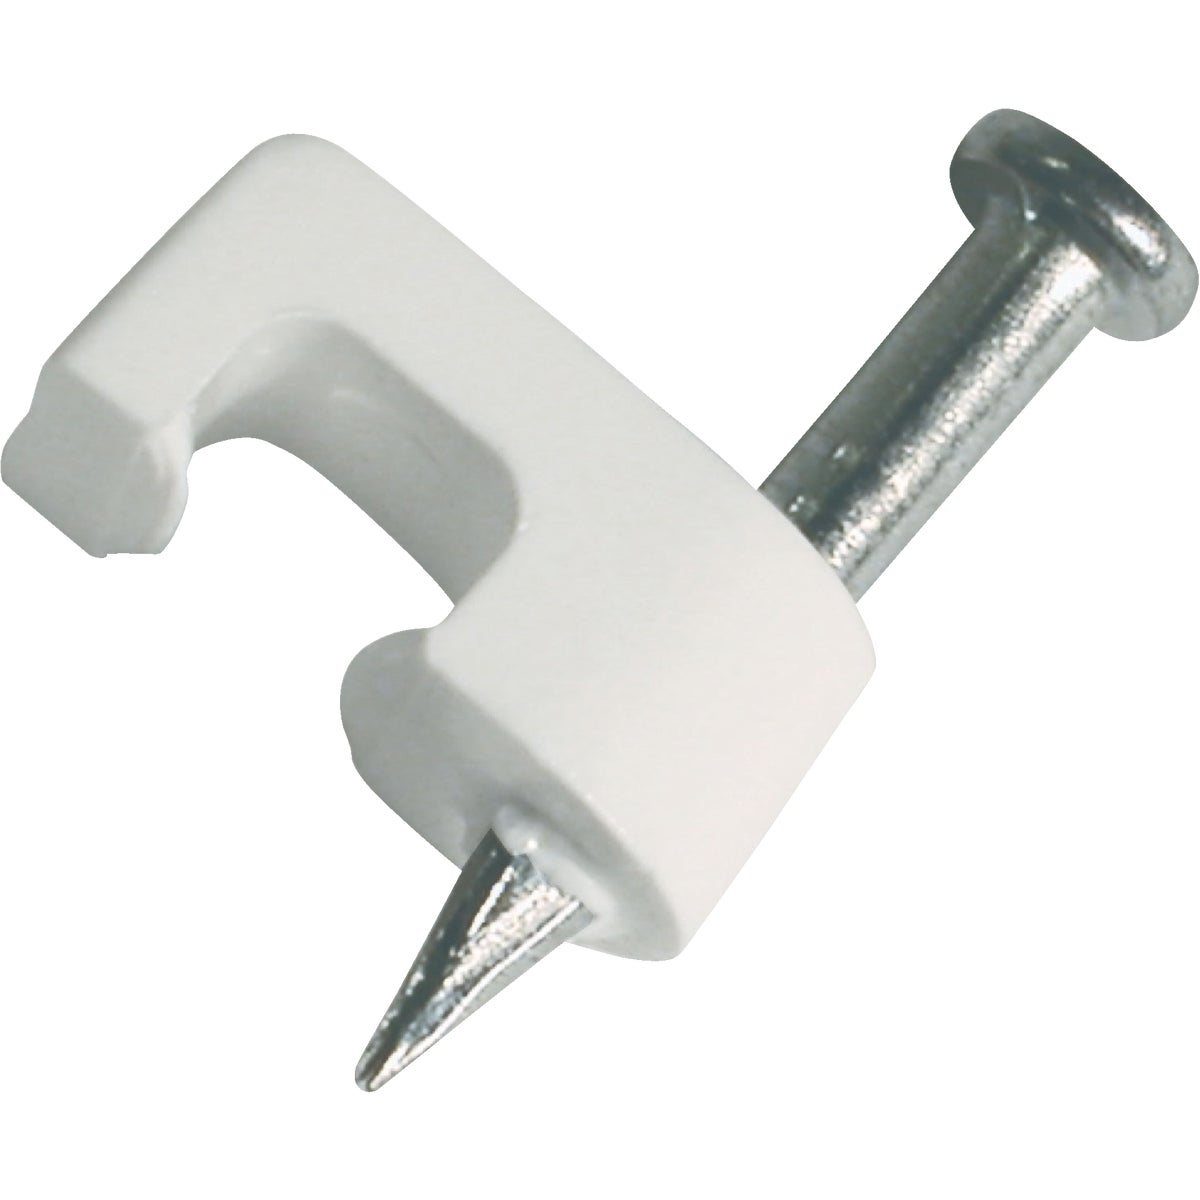 "1/4"" LOW-VOLT STAPLE"